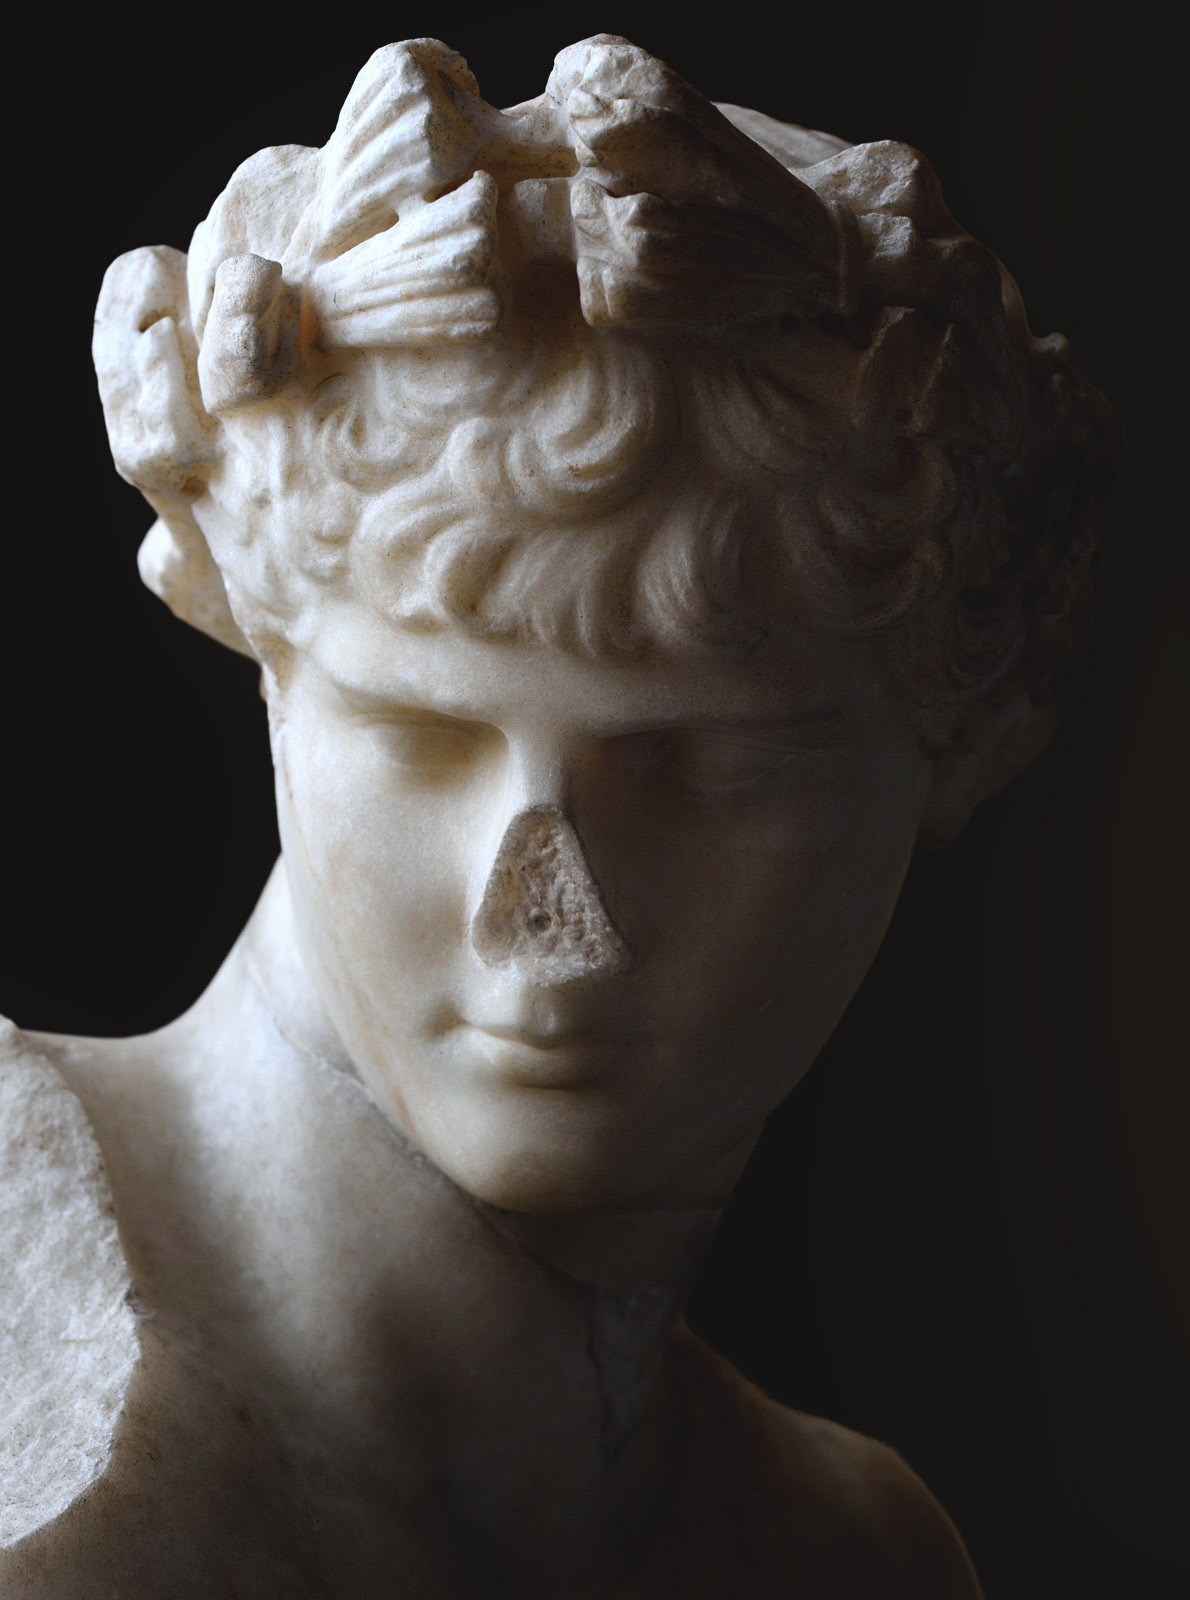 Antinous as Dionysus (close-up). Pentelic marble. Inv. No. MC 897. Rome, Capitoline Museums, Museum Montemartini (Centrale Montemartini), II. 78